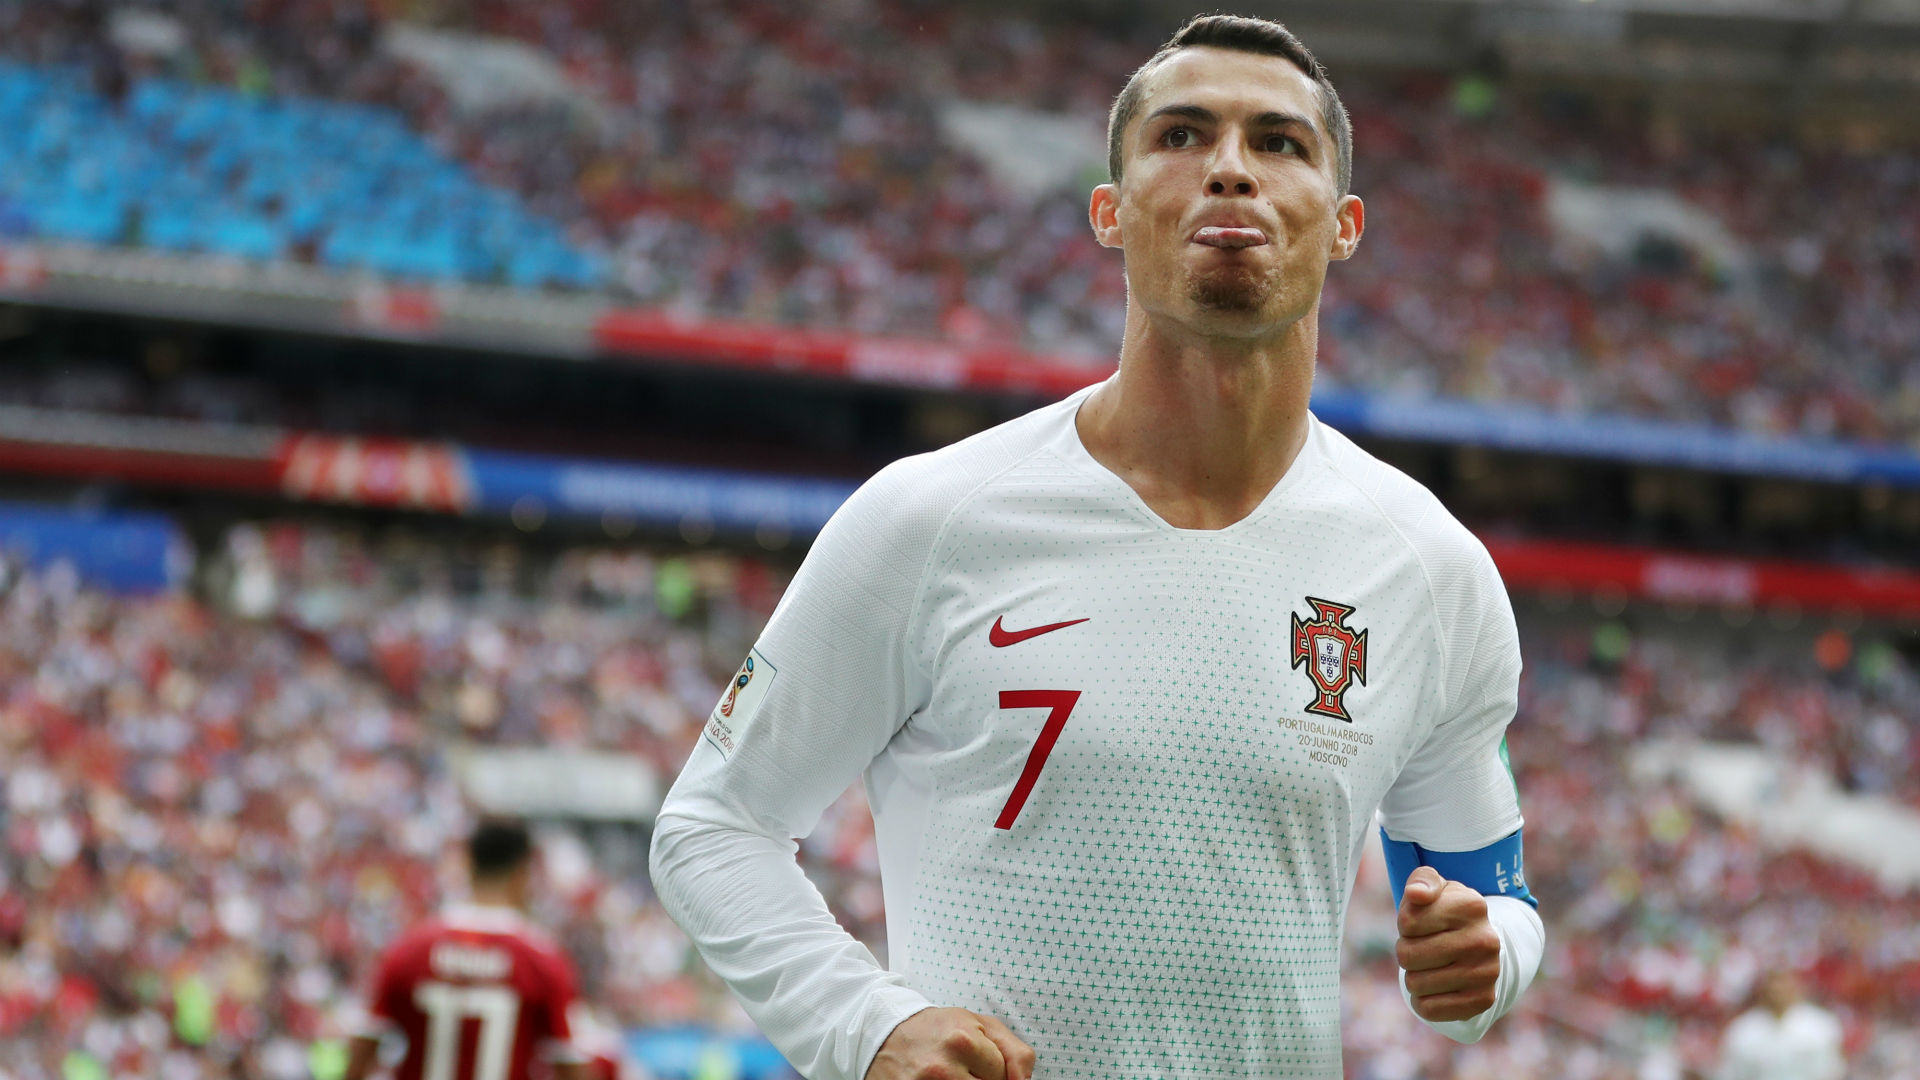 wholesale dealer beff8 1d10b World Cup 2018: Cristiano Ronaldo is making his case for ...